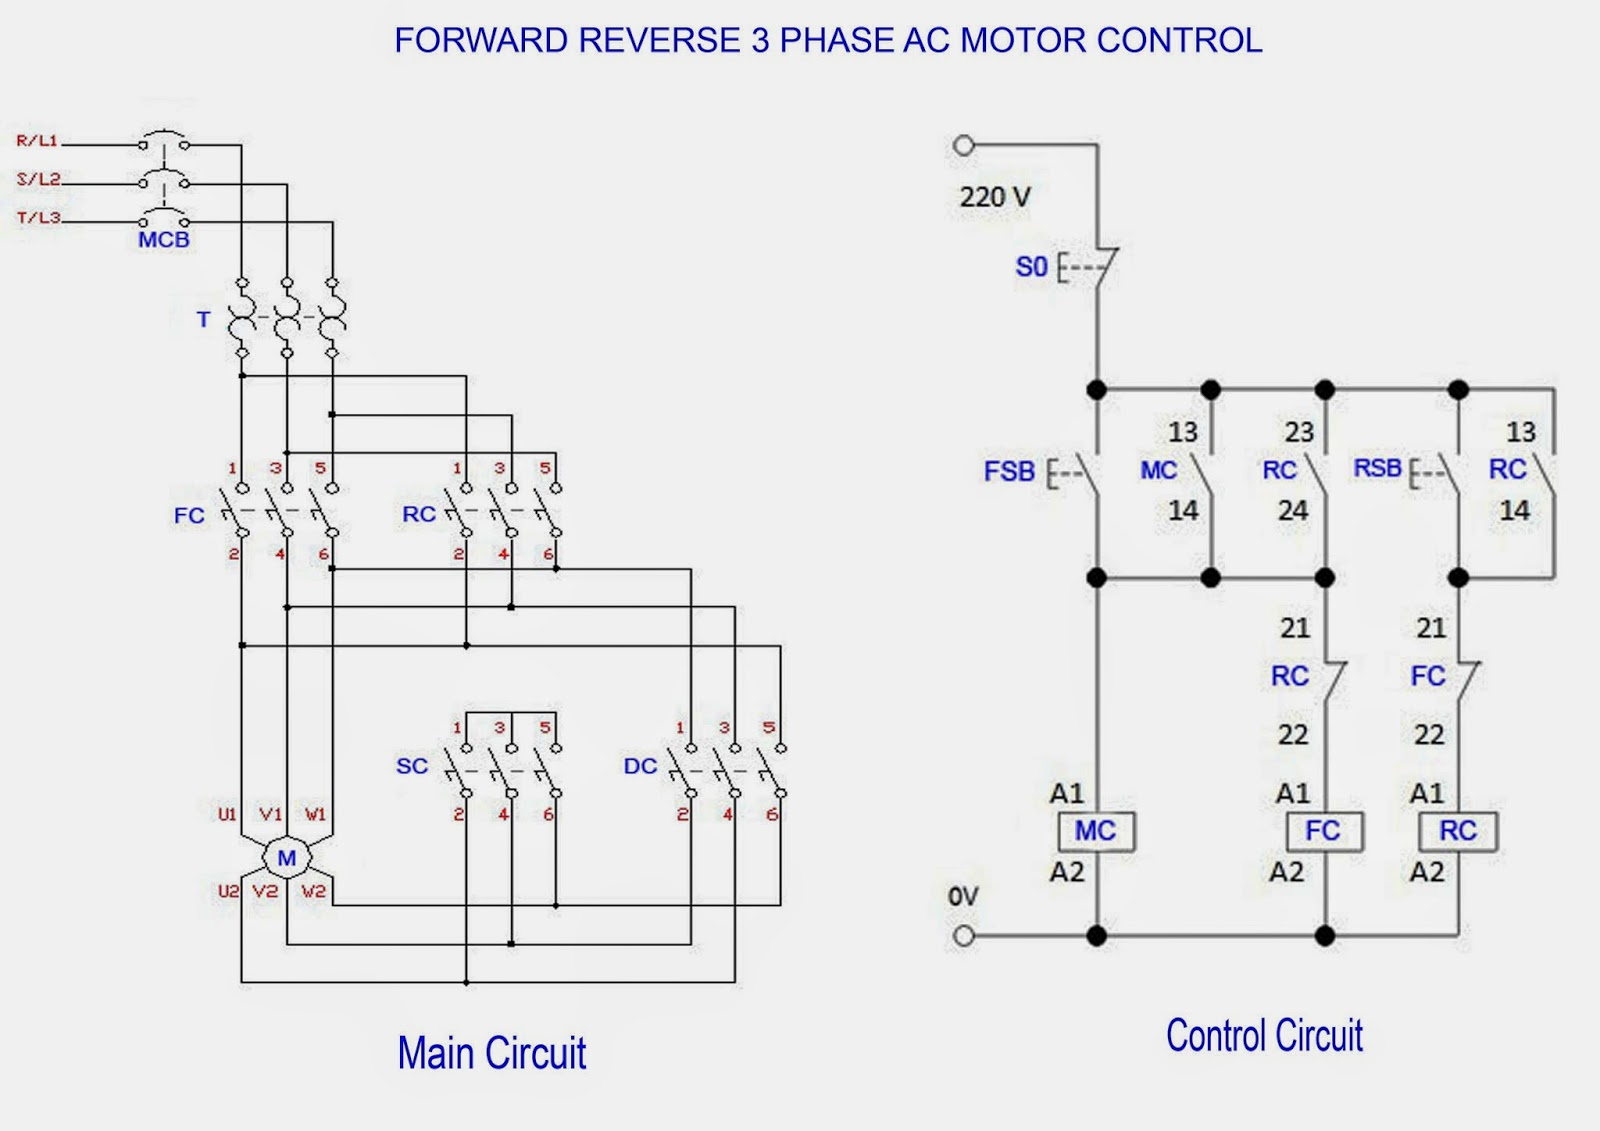 one light three switch electrical wiring diagram html with Forward Reverse 3 Phase Ac Motor on How To Wire 4 Way Switch as well SwitchesTut additionally Wiring Diagrams 3way 4 further Forward Reverse 3 Phase Ac Motor moreover 551757 Ge 12722 Zwave 12723 4way Wiring.